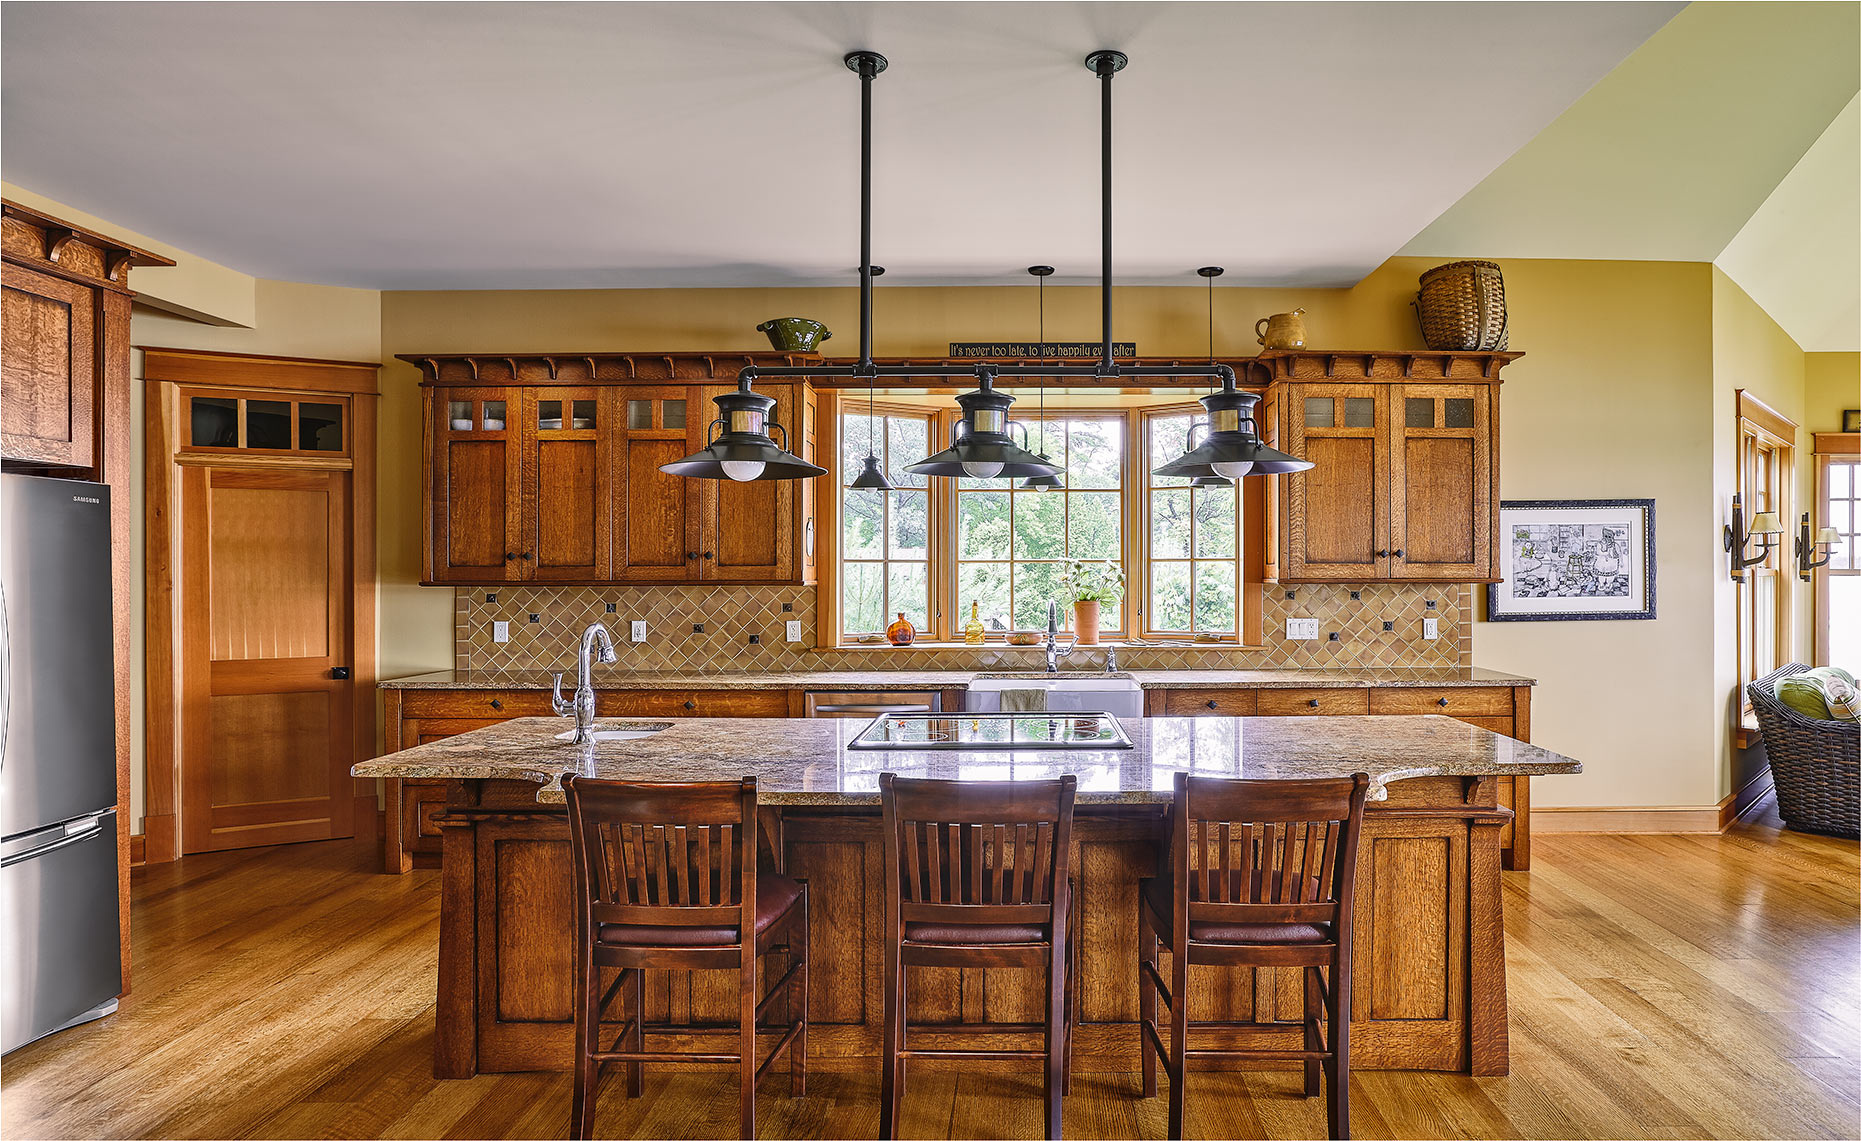 custom kitchen remodels bucks county nj-Mission Style Kitchen Quartered Oak